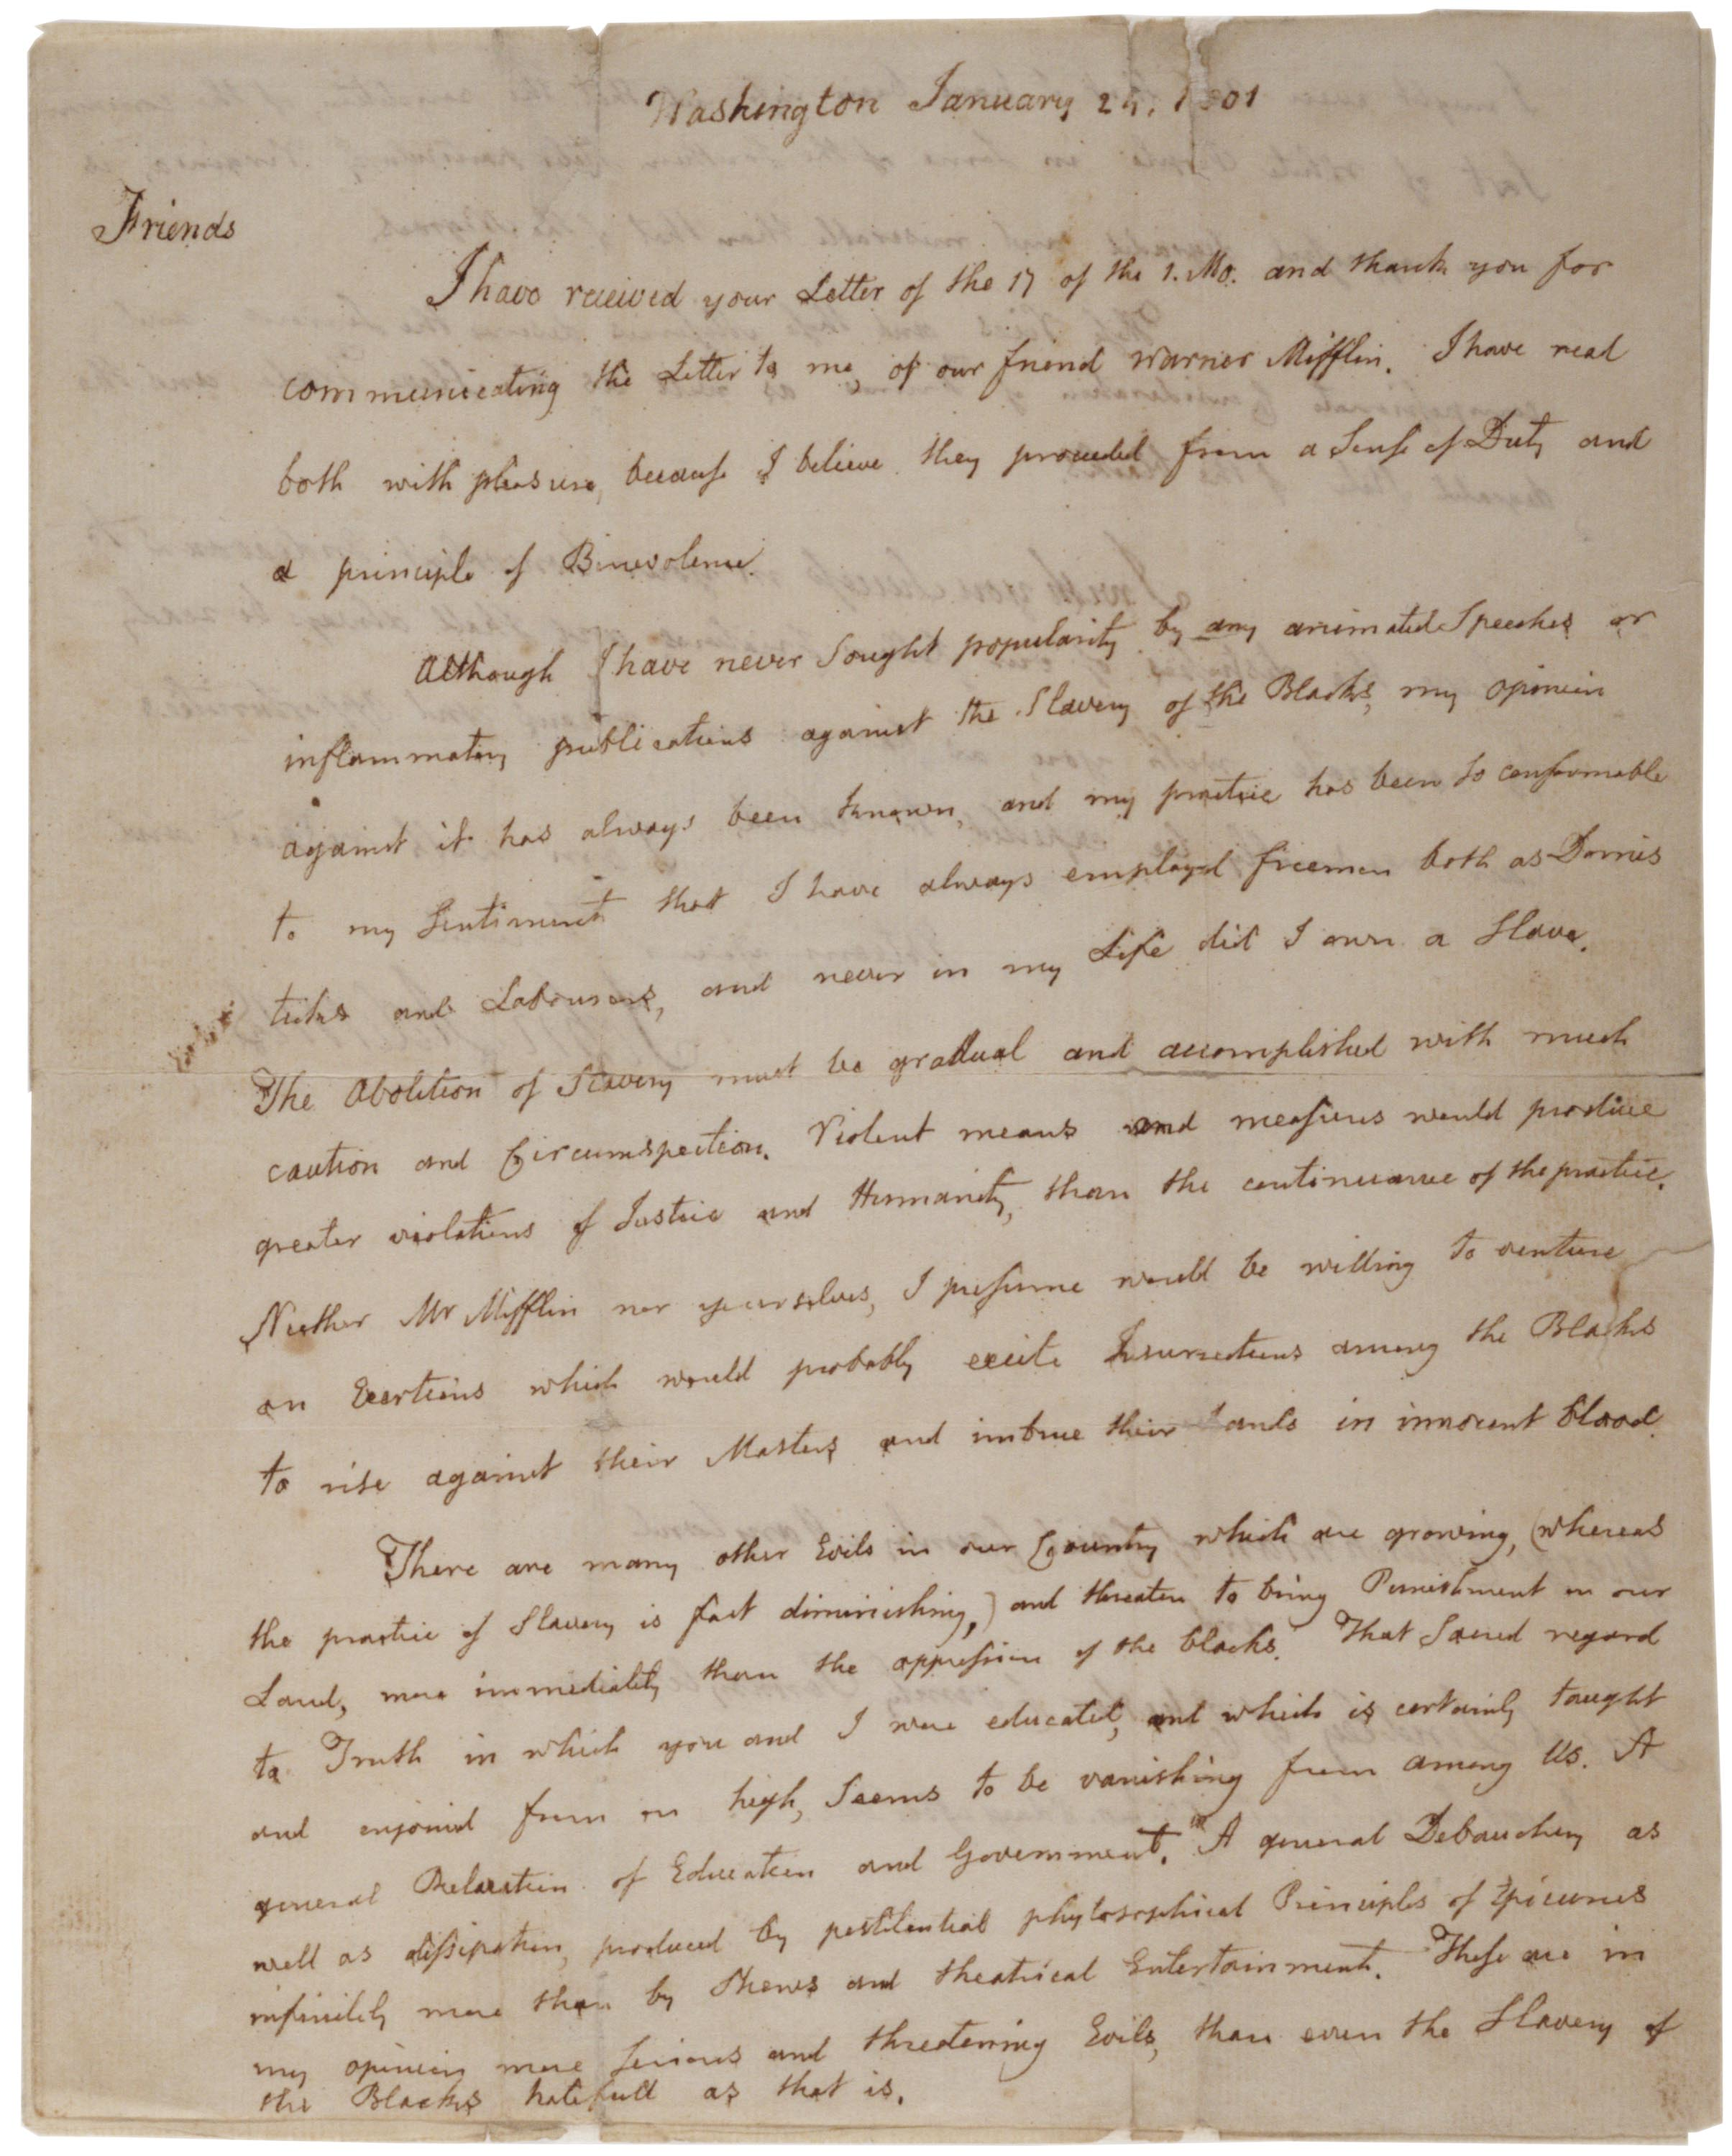 John Adams to George Churchman and Jacob Lindley, January 24, 1801. (Gilder Lehr